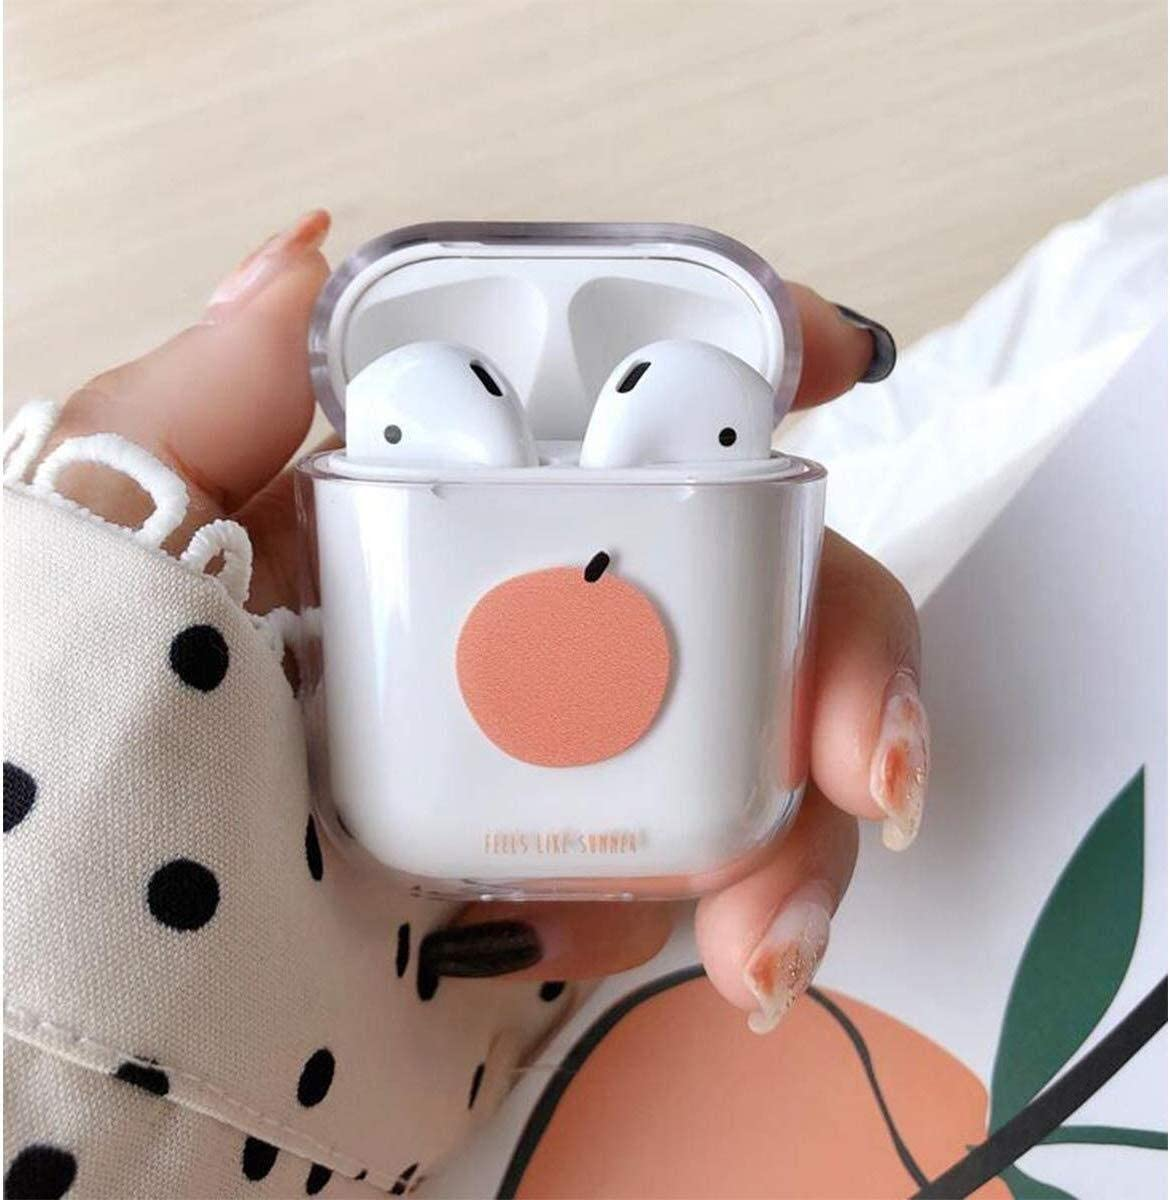 YSYYSH Wireless Bluetooth Headset Set Silicone Material Transparent Earphone Storage Box A Variety of Patterns Can Choose Portable Earphone Color : R